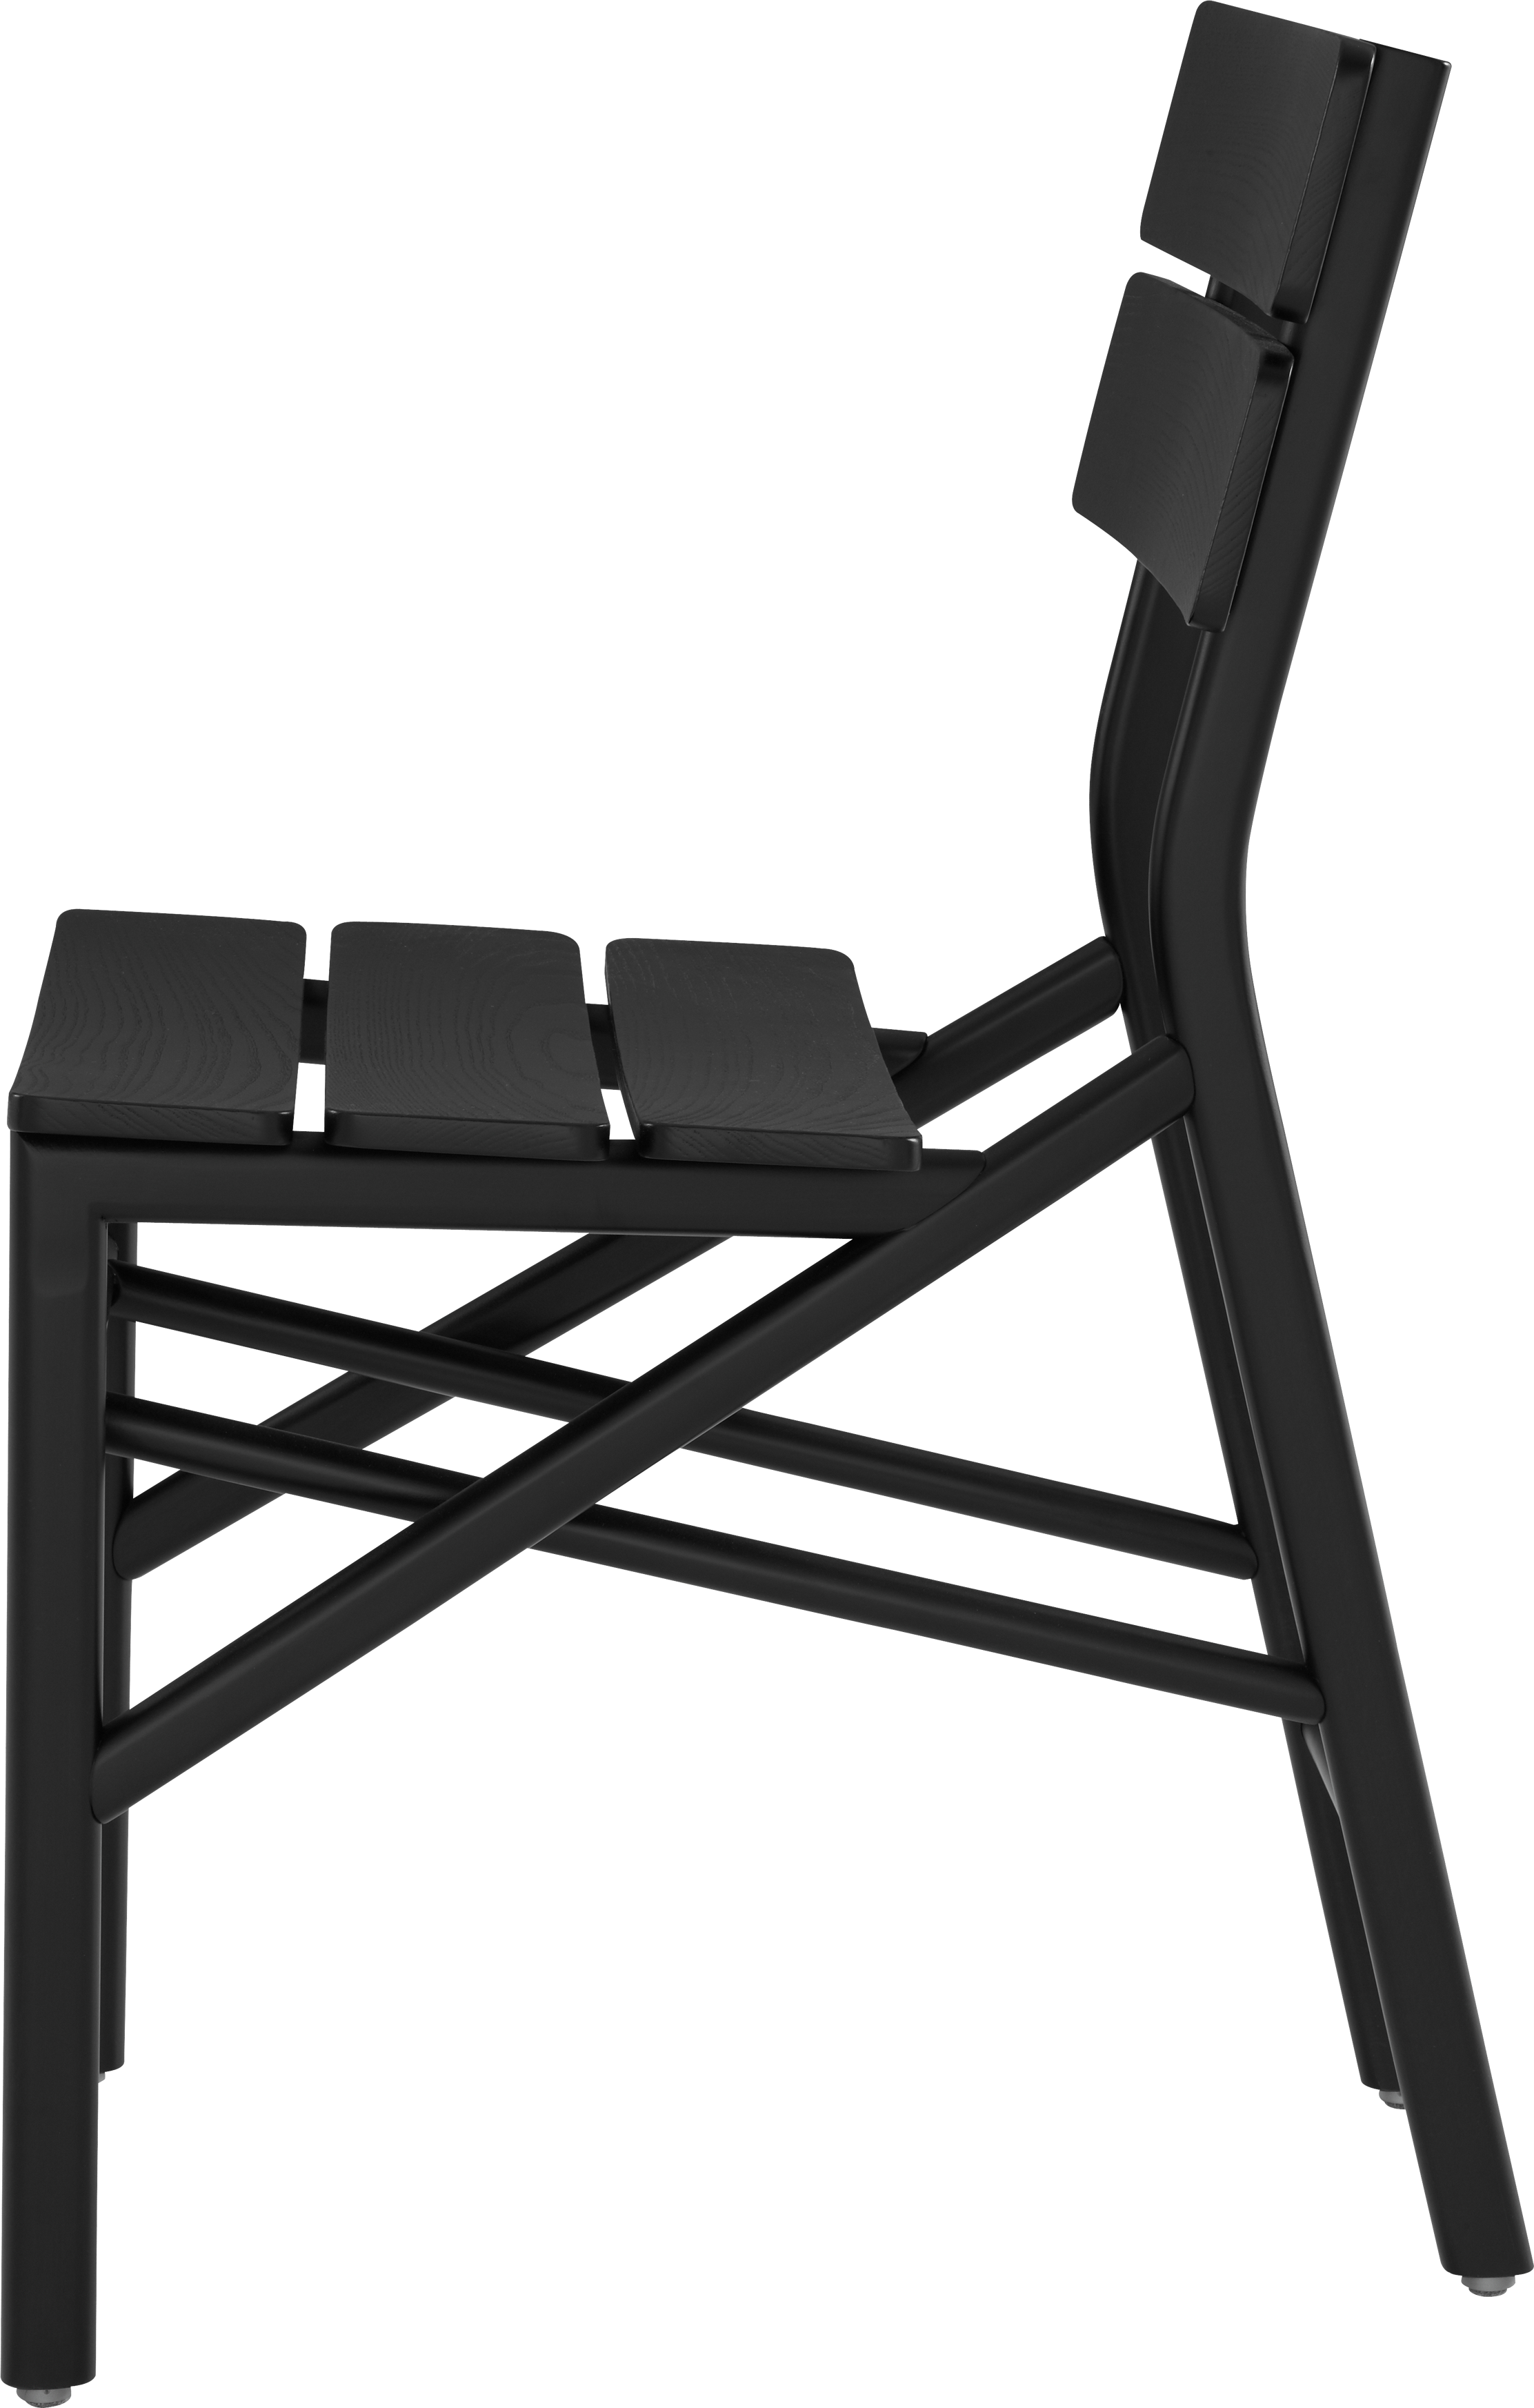 transparent polycarbonate chairs pico folding chair png image